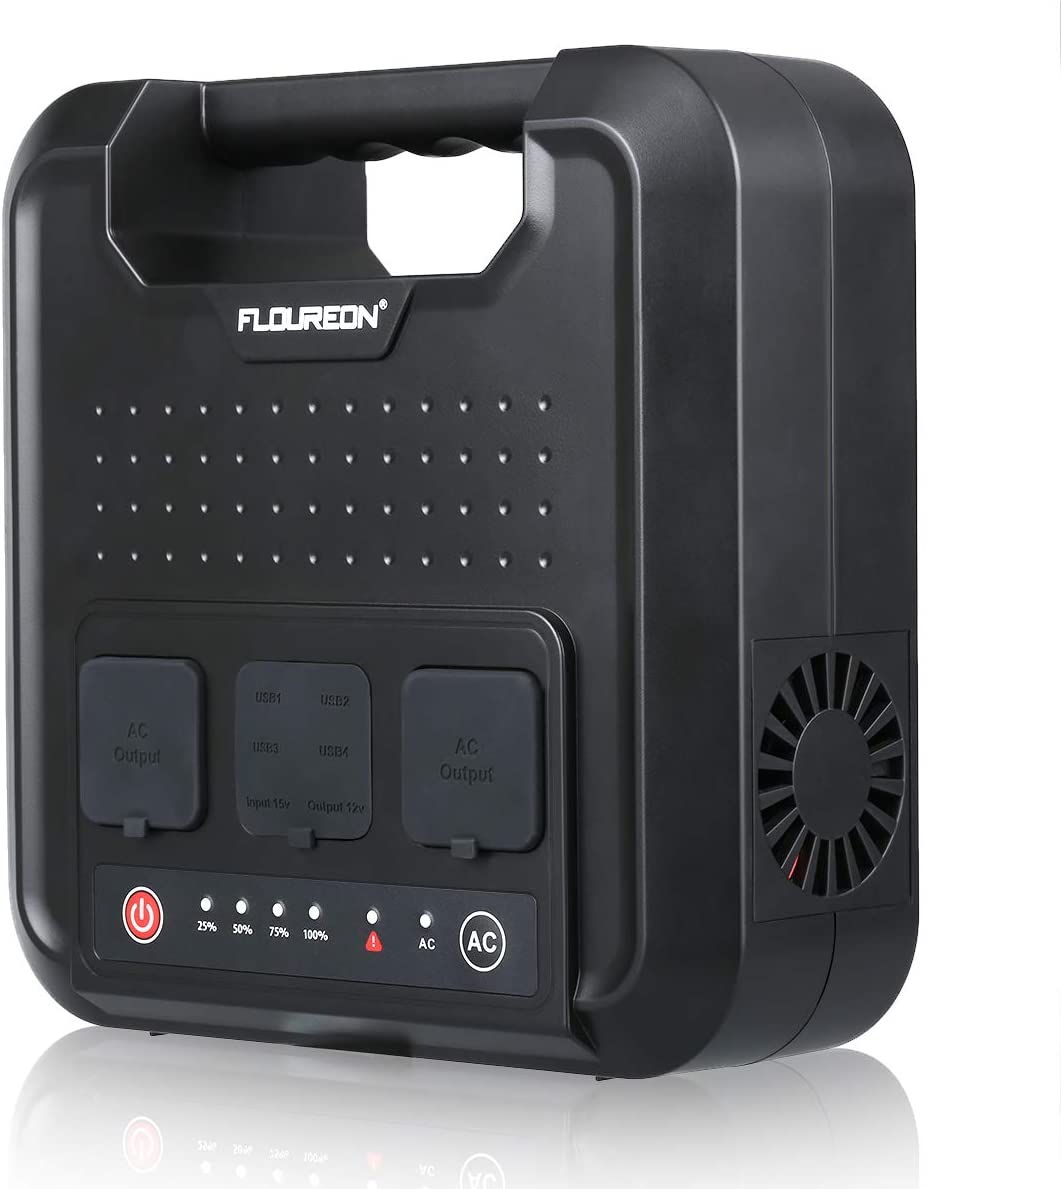 floureon 220Wh Portable Power Generator Power Station Home Solar Generator Lithium Battery Backup Power Supply with 120V 300W 2 AC Outlets 4 USB Ports for Outdoors Camping Fishing Emergency